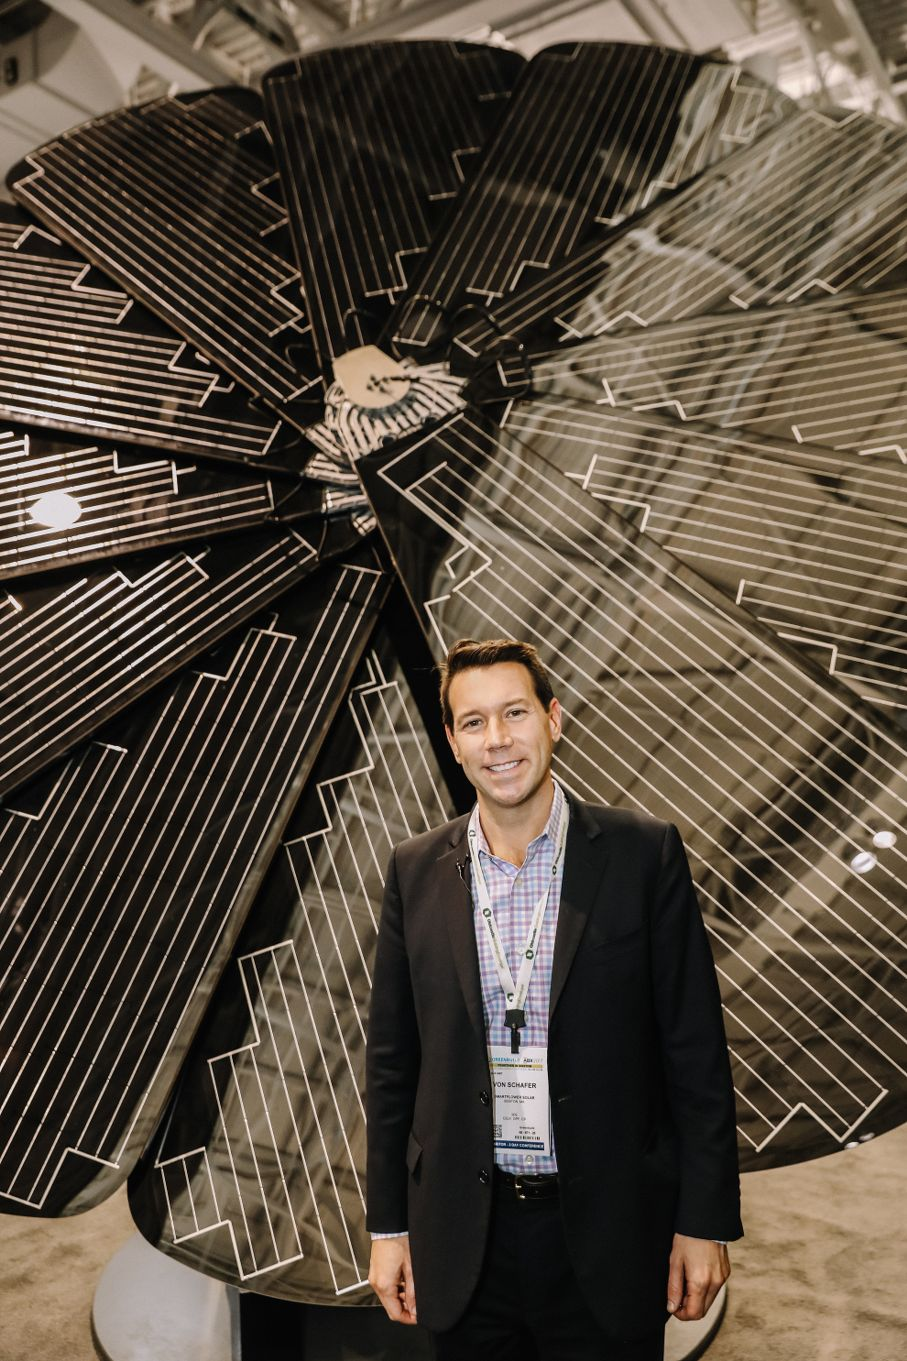 Making a Statement with SmartFlower Solar at Greenbuild